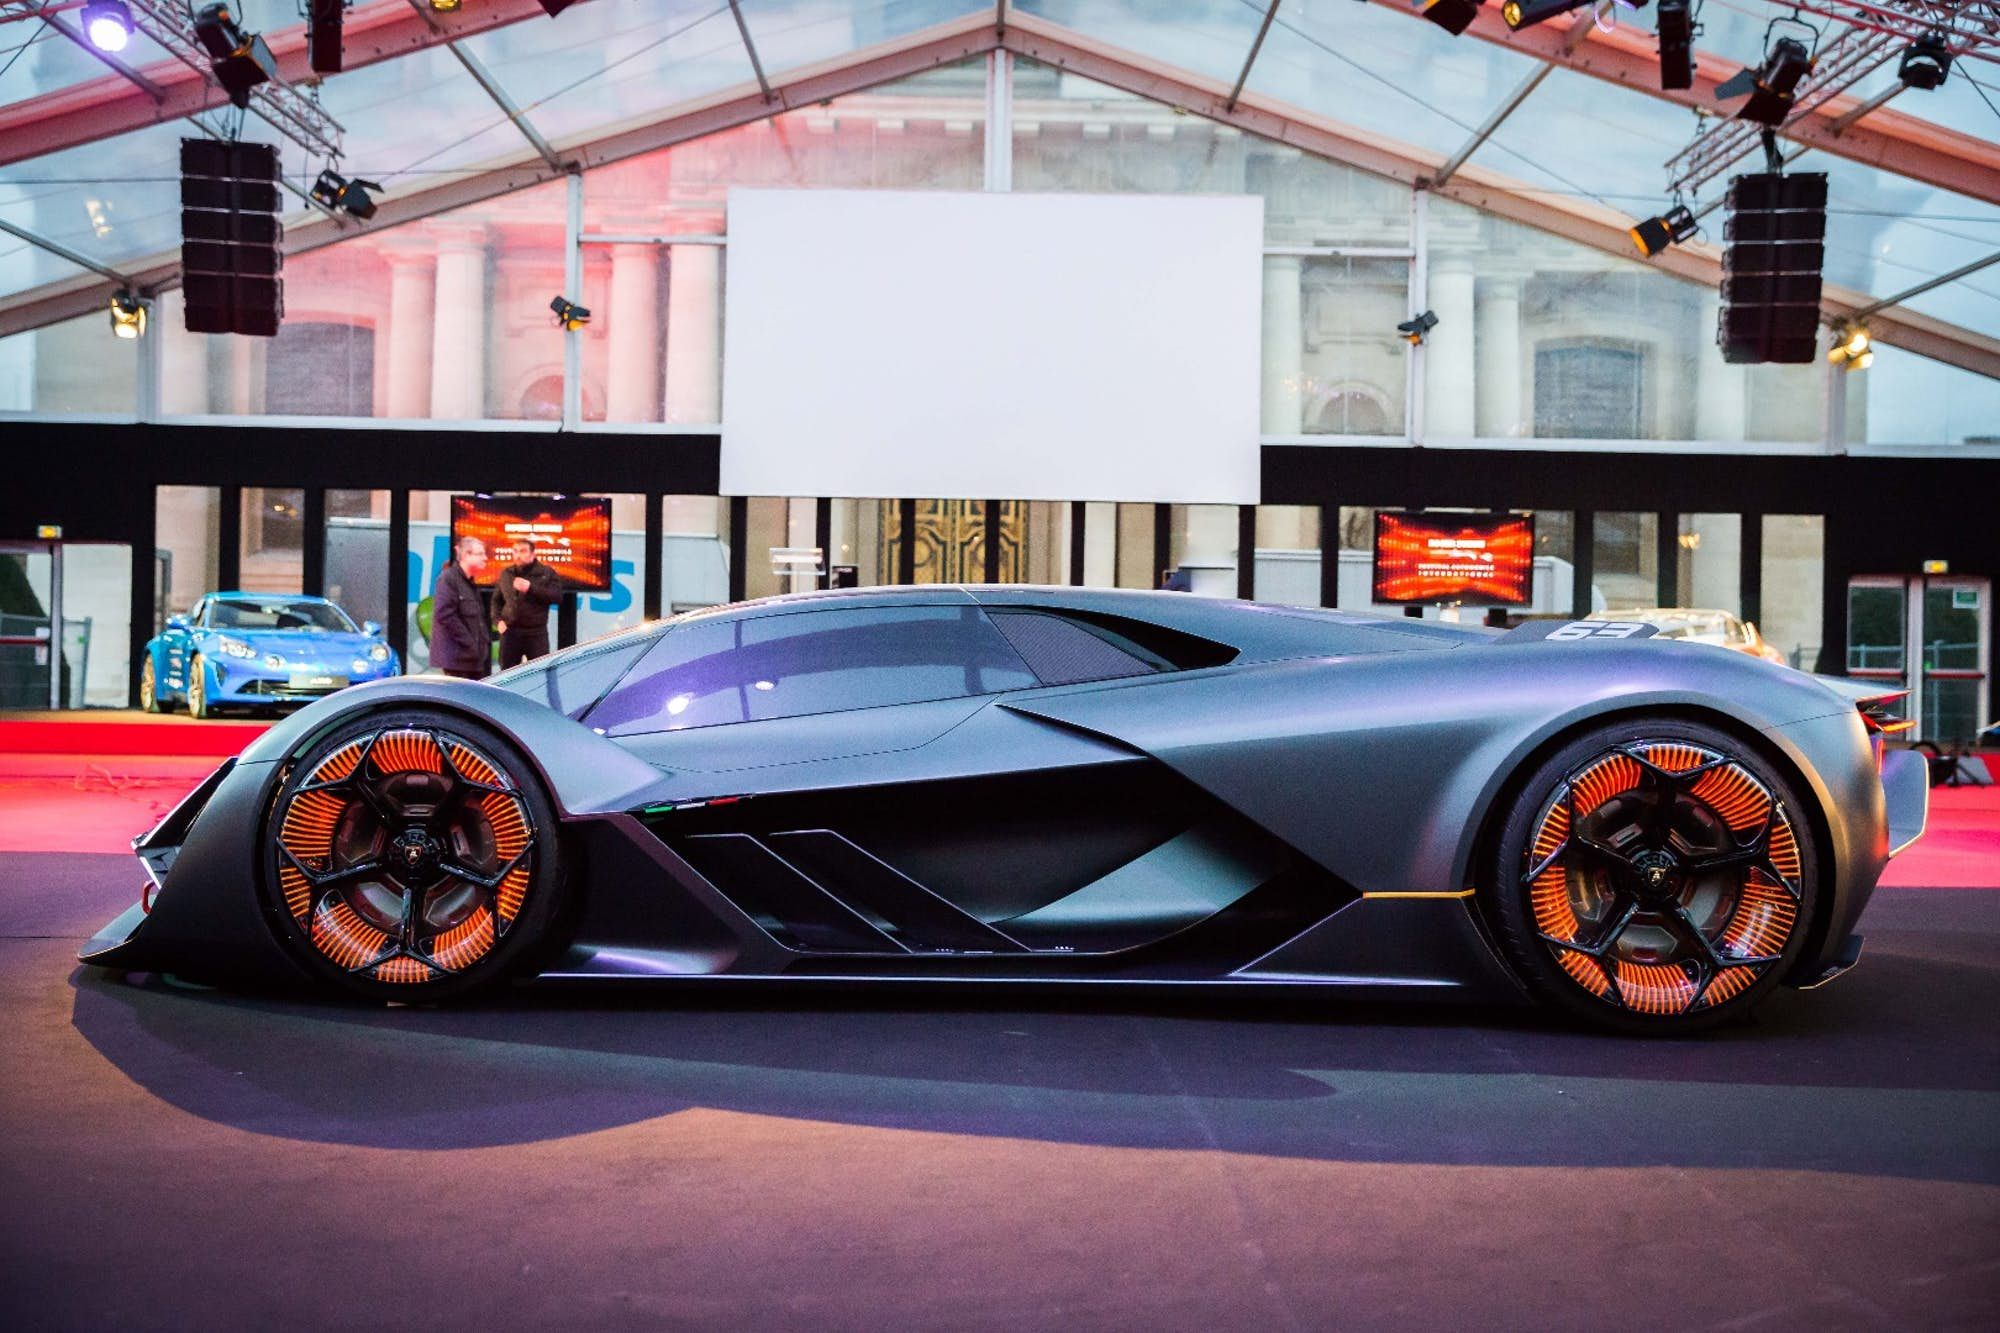 One Of The Finalists Of The Most Beautiful Concept Car Of 2017 The Lamborghini Terzo Mellennio Lamborghini Automobile Super Cars